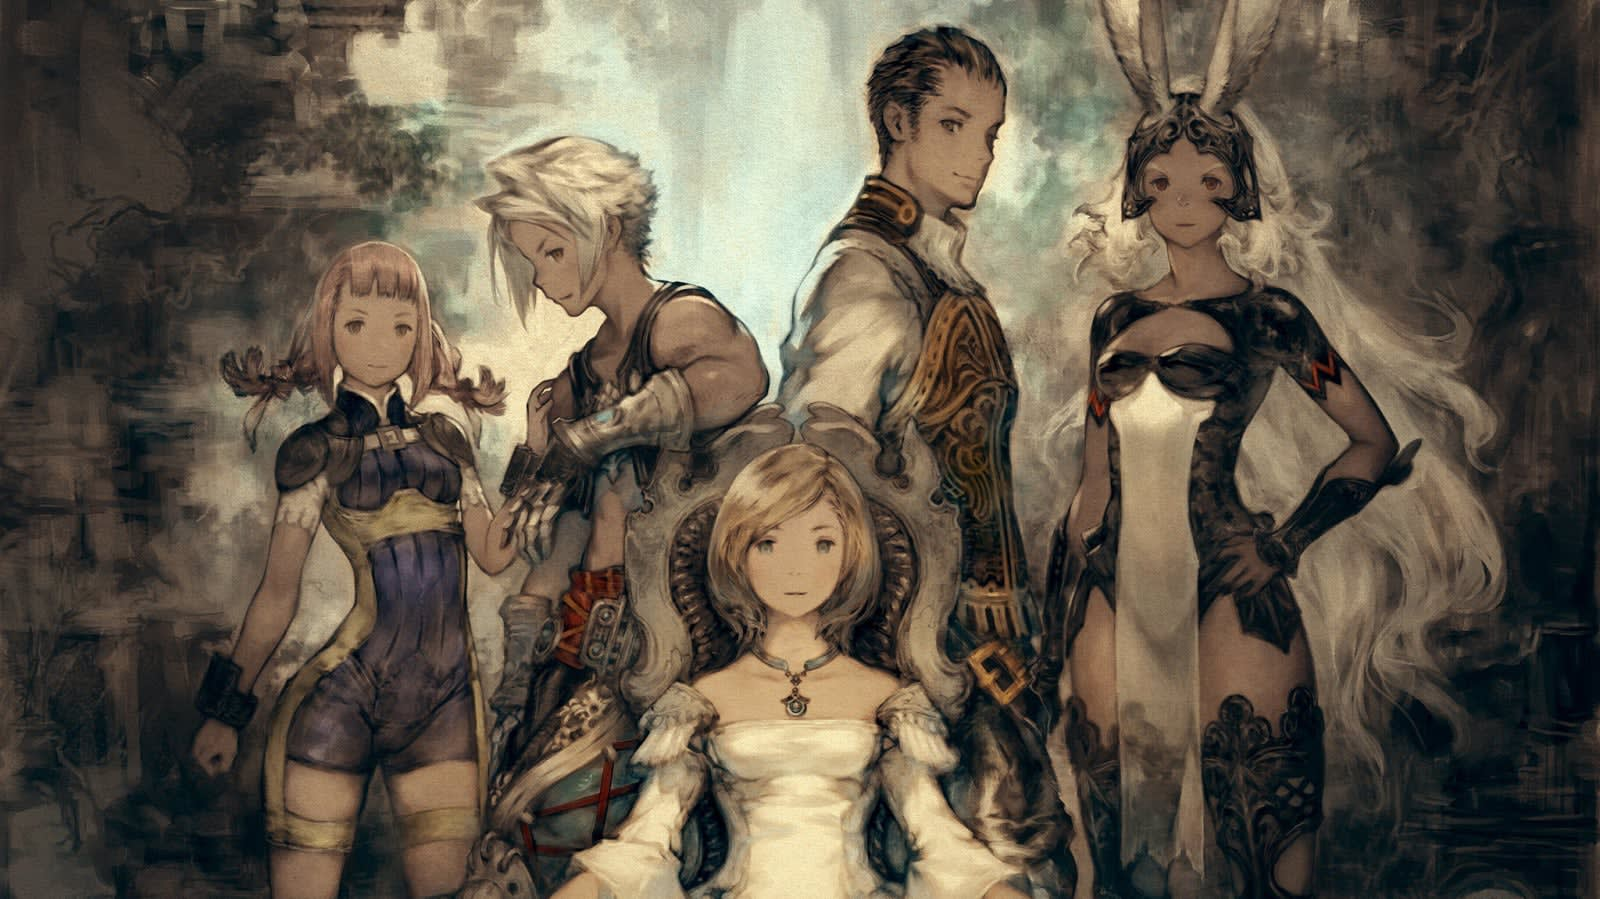 'Final Fantasy XII' arrives on Switch and Xbox One